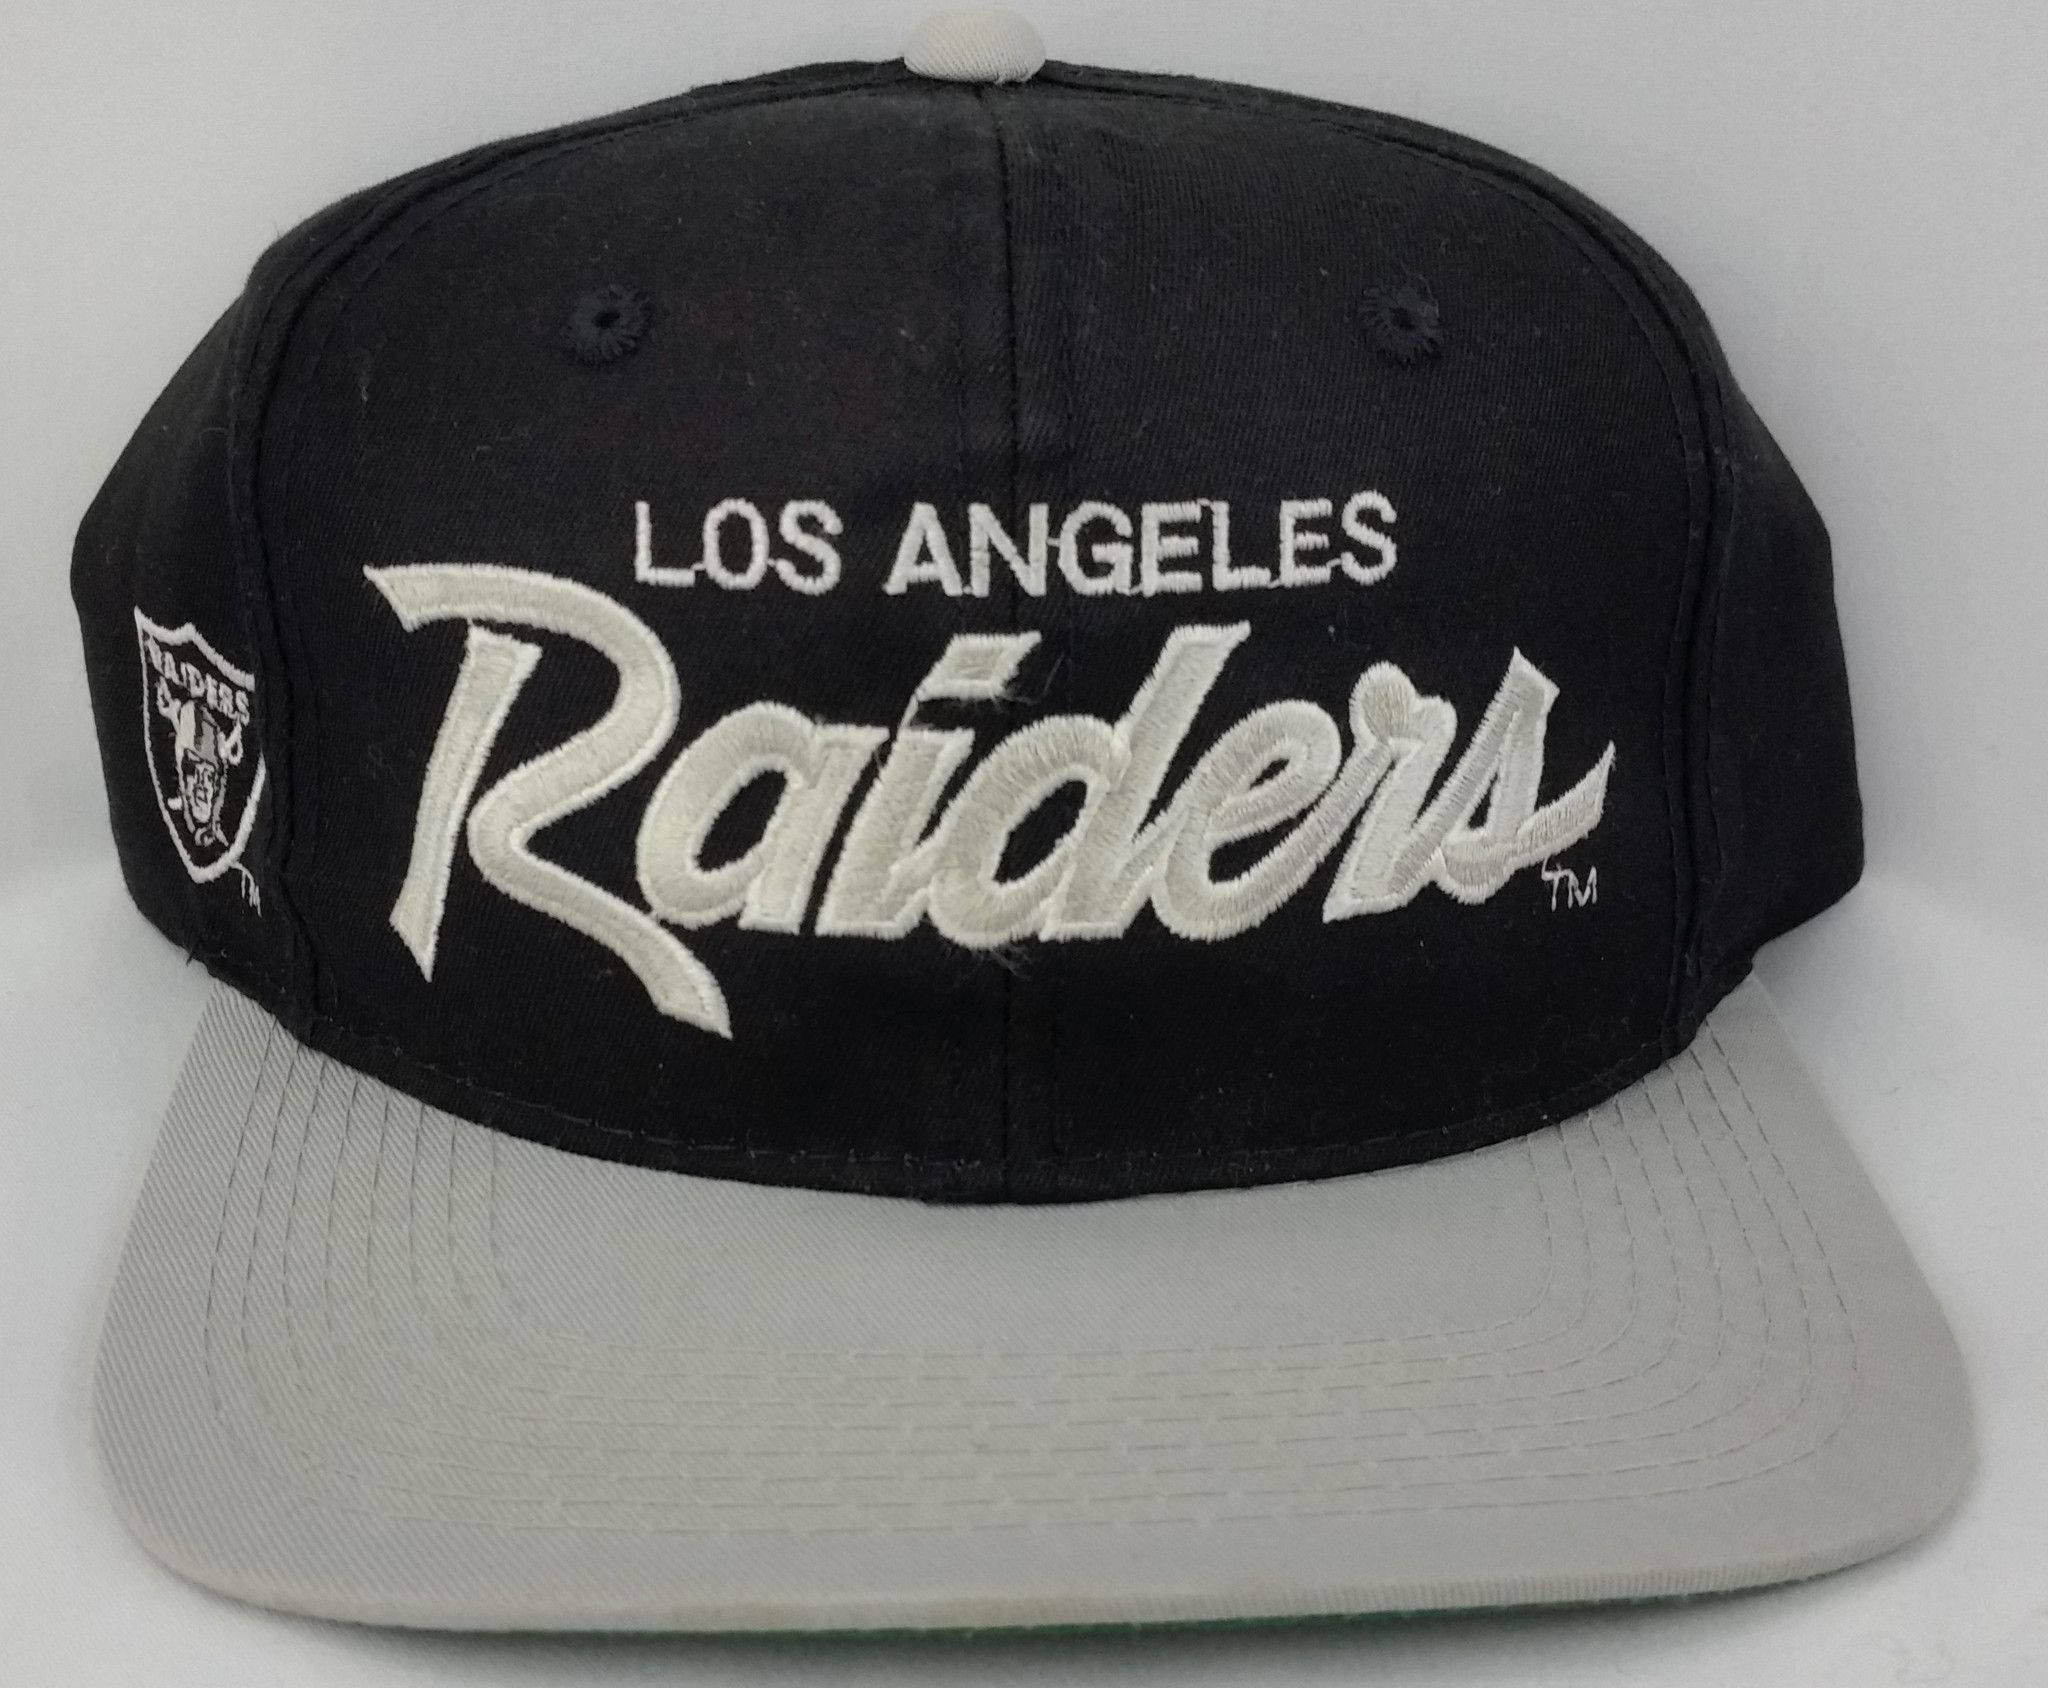 dbdc6465c10 Los Angeles Raiders Snapback Vintage Sports Specialties Script Hat RARE  Oakland